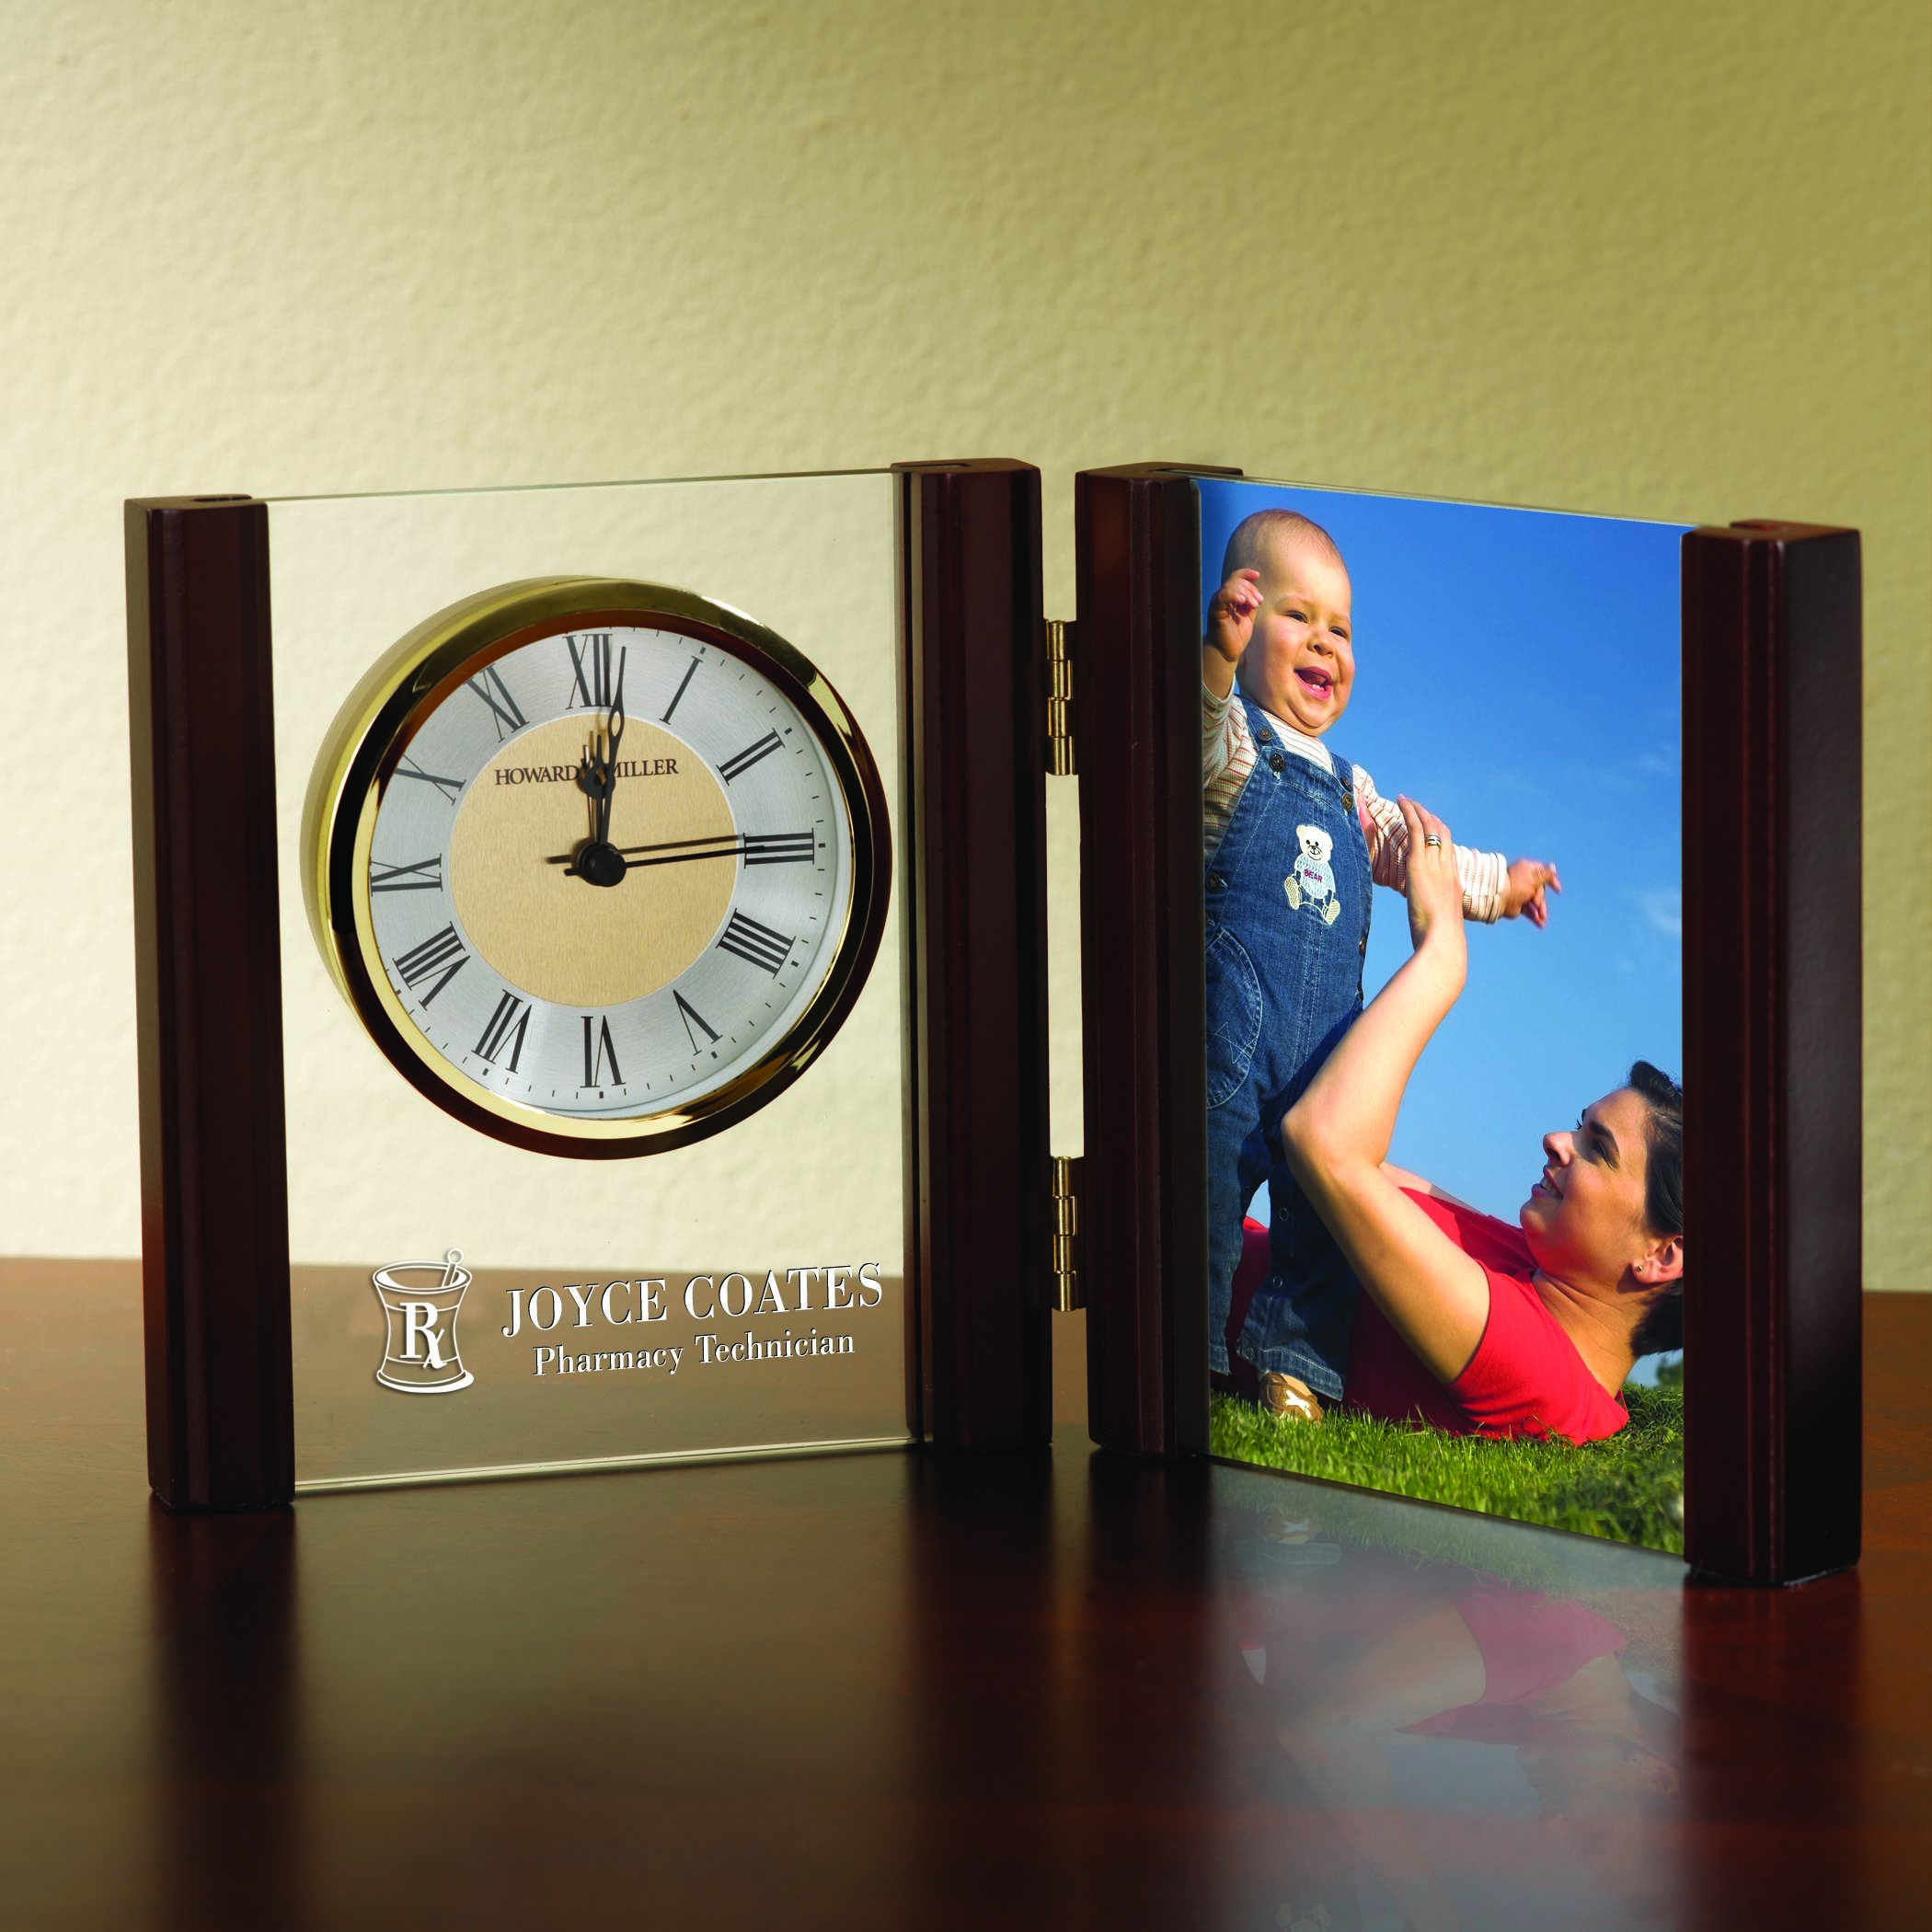 Personalized pharmacy gifts y129 frame and clock jeuxipadfo Images